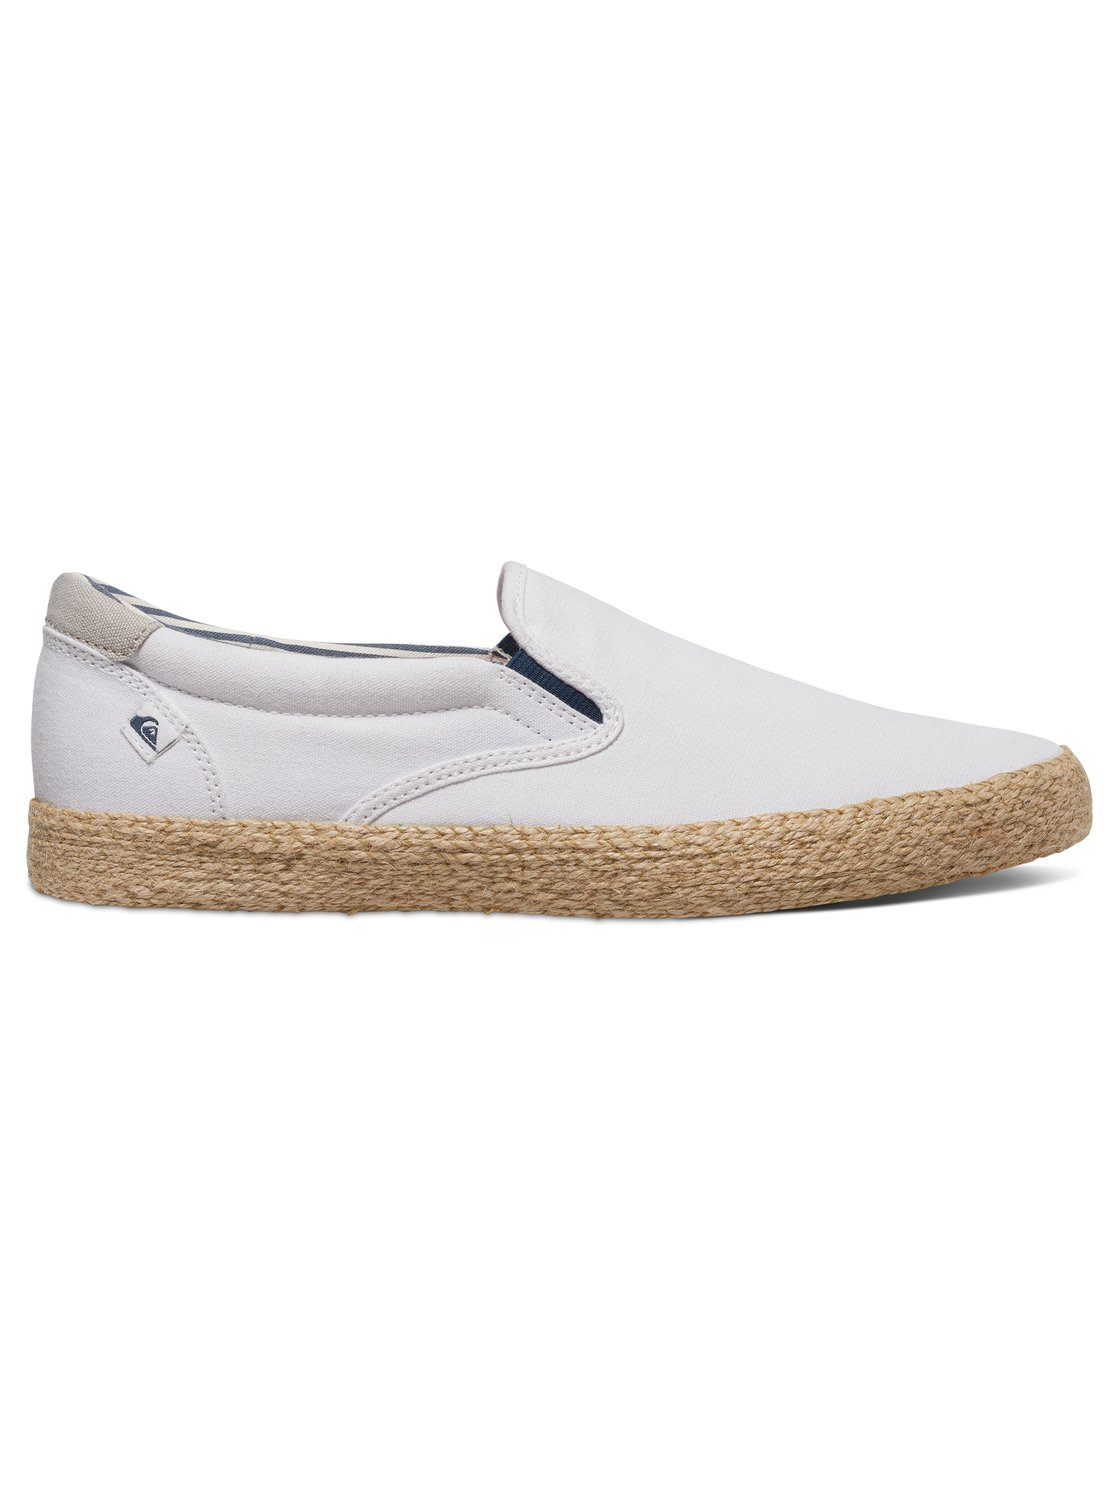 shorebreak chaussures slip on aqys300056 quiksilver. Black Bedroom Furniture Sets. Home Design Ideas